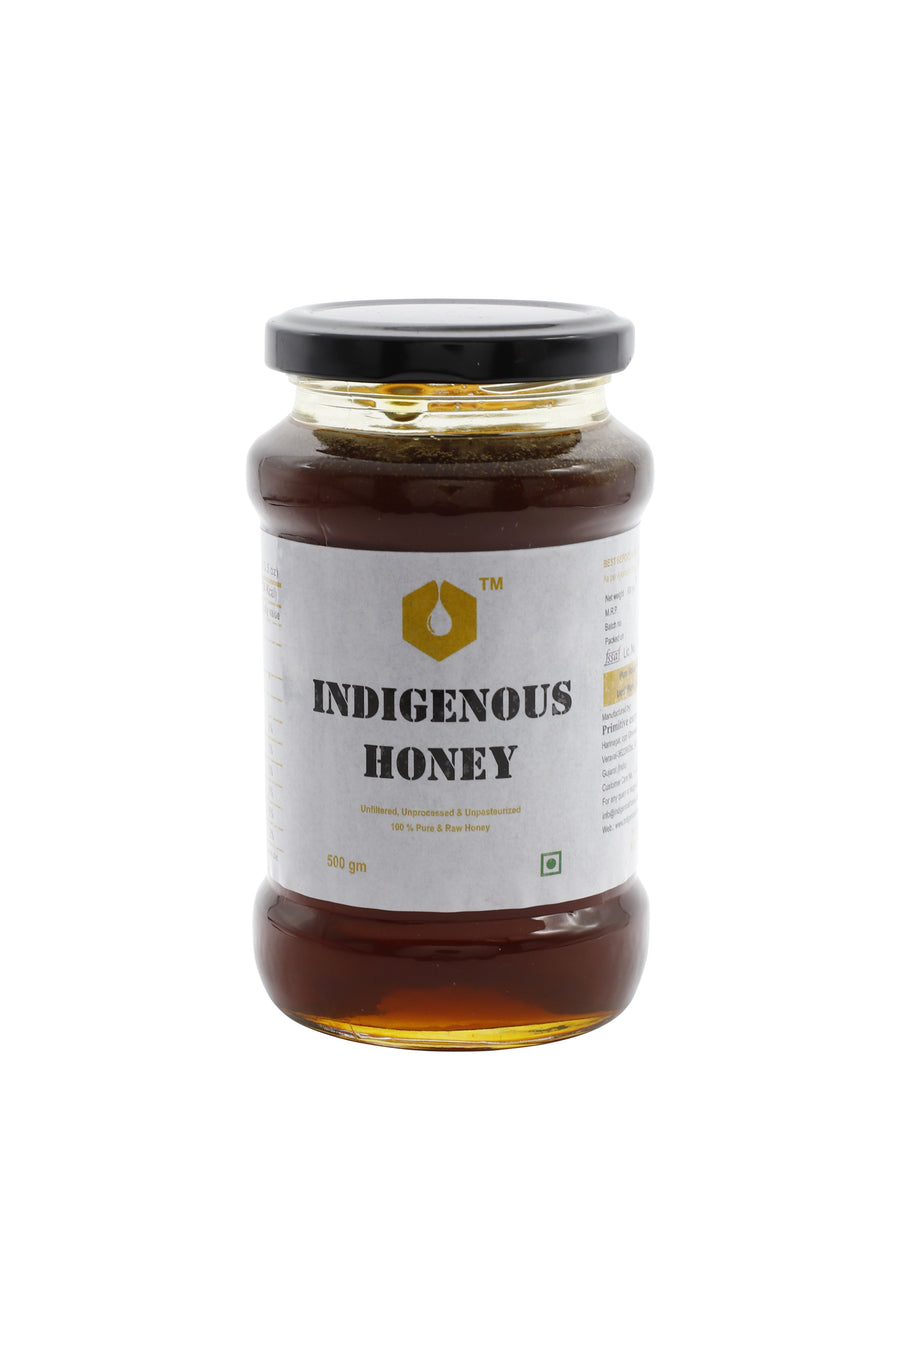 Indigenous honey Raw honey (Alfalfa) - 530 gram